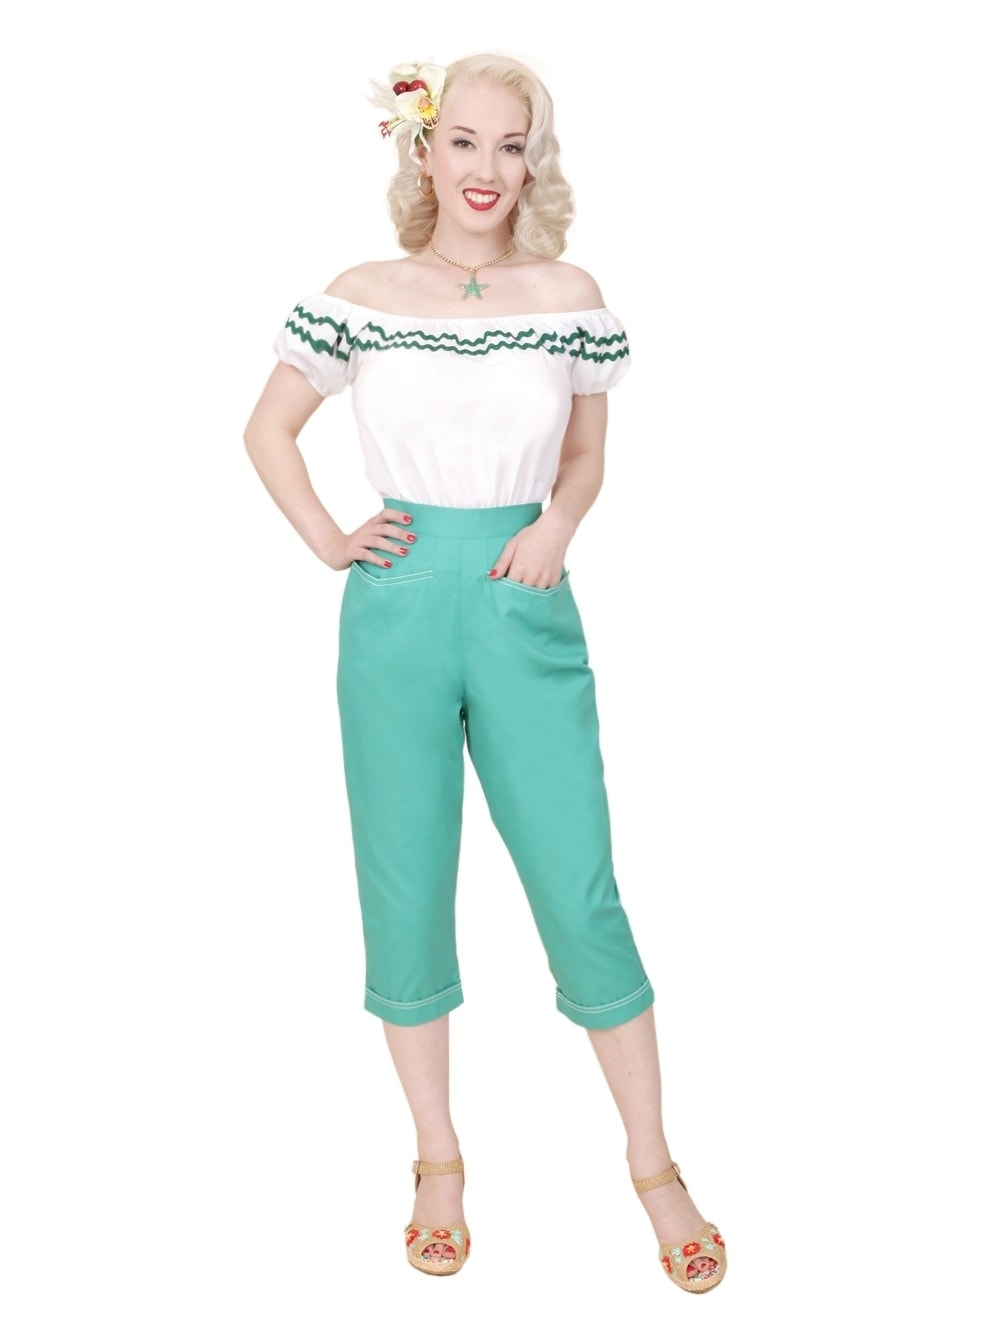 VIVIENNE OF HOLLOWAY PANTS - Capri Pants Teal Drill - Atomic Retro